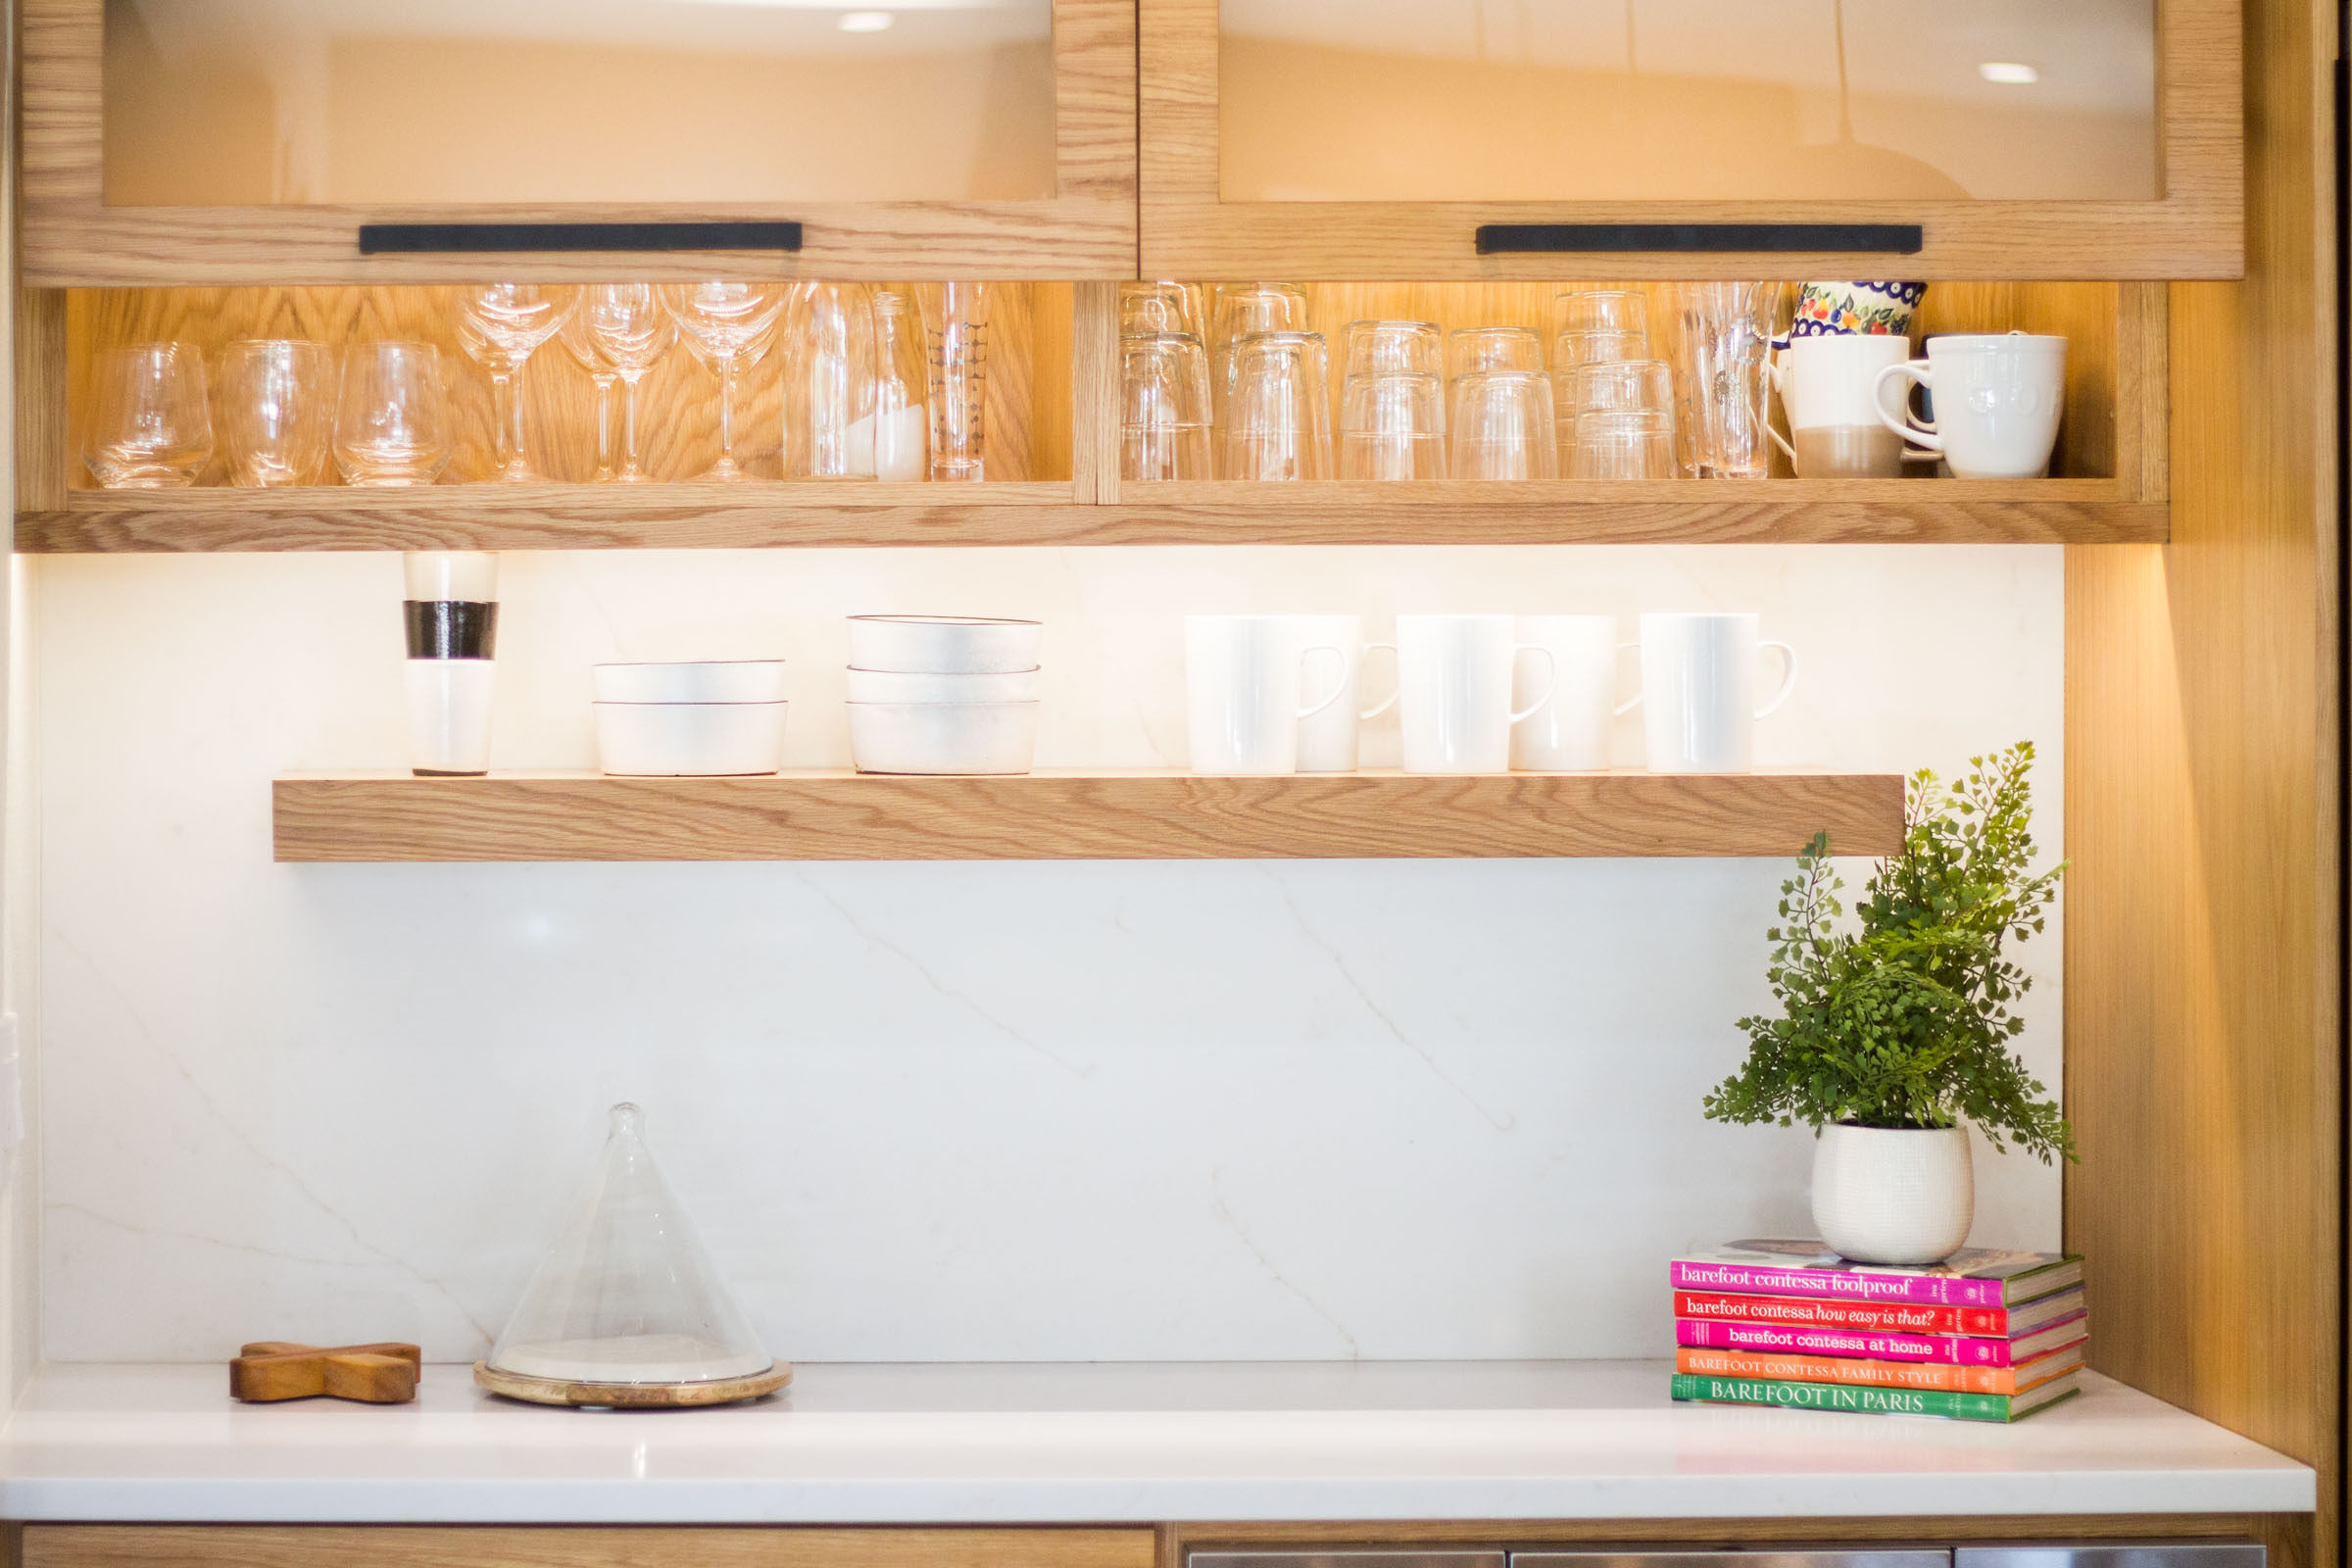 Exposed blonde wood shelving with glasses and mugs, books and minimalistic decor on white counters